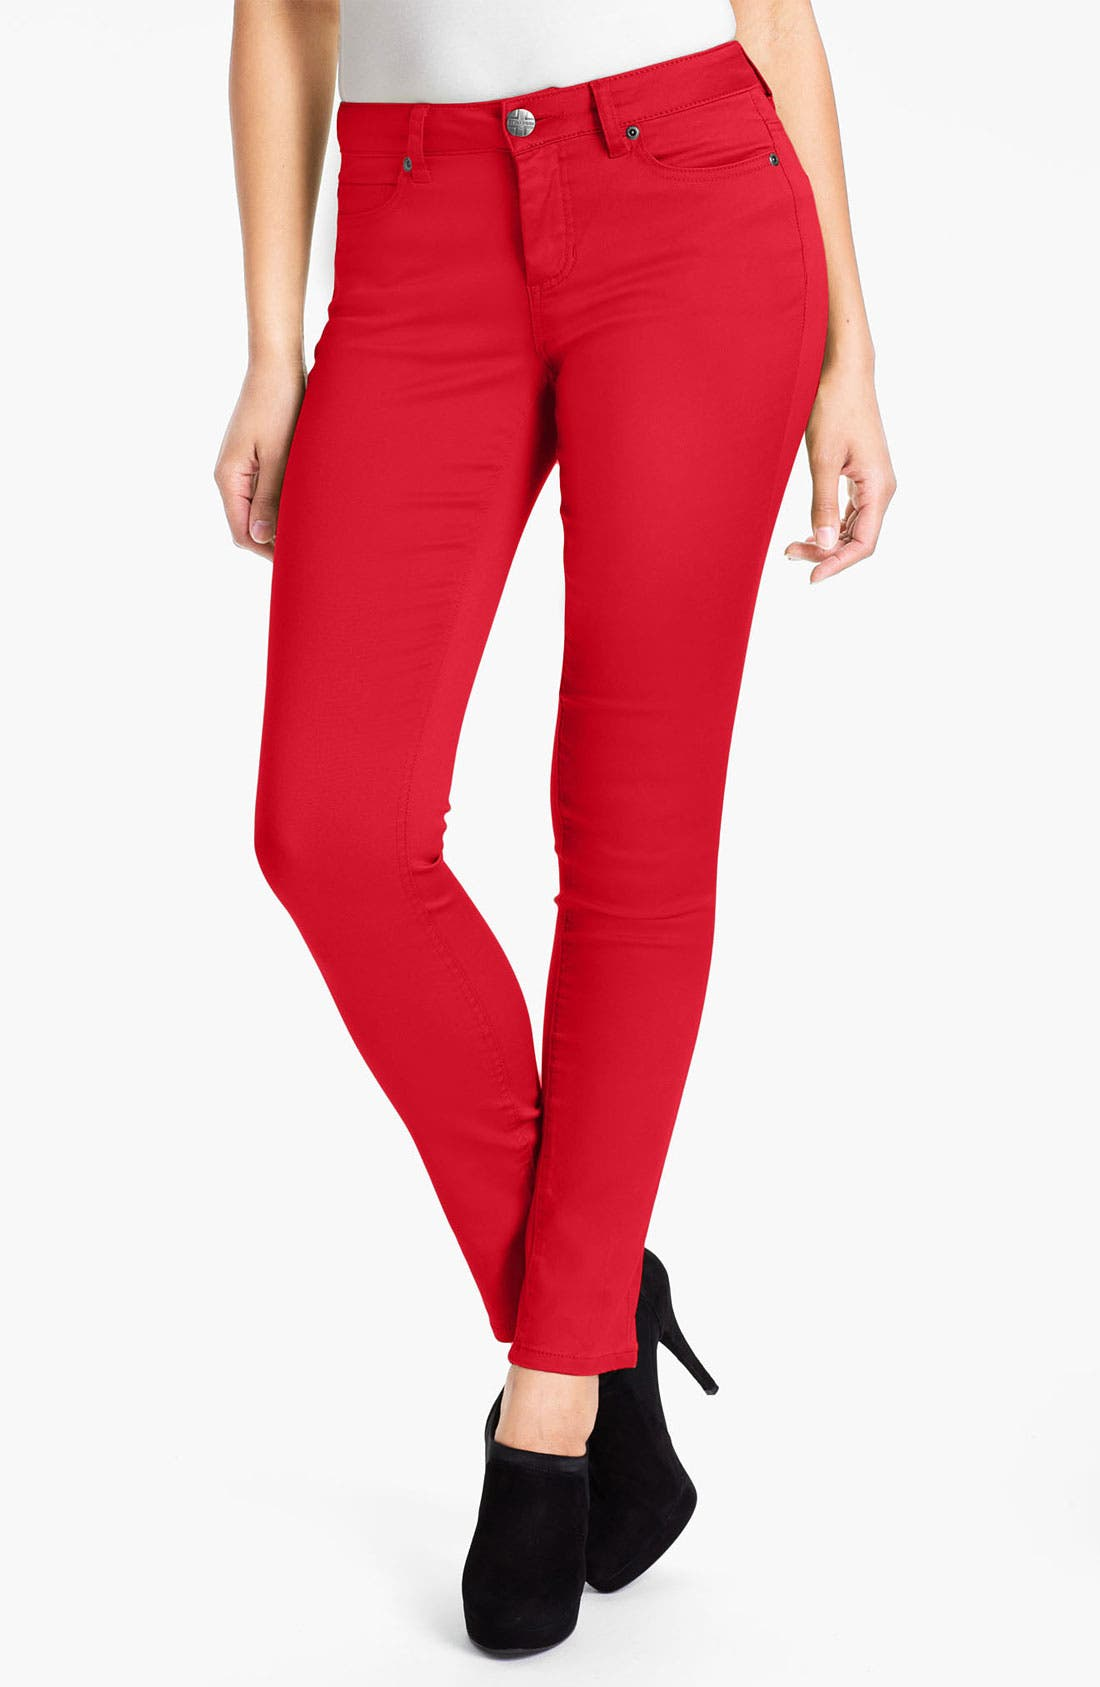 Alternate Image 1 Selected - Liverpool Jeans Company 'Abby' Skinny Stretch Twill  Jeans (Petite) (Online Exclusive)